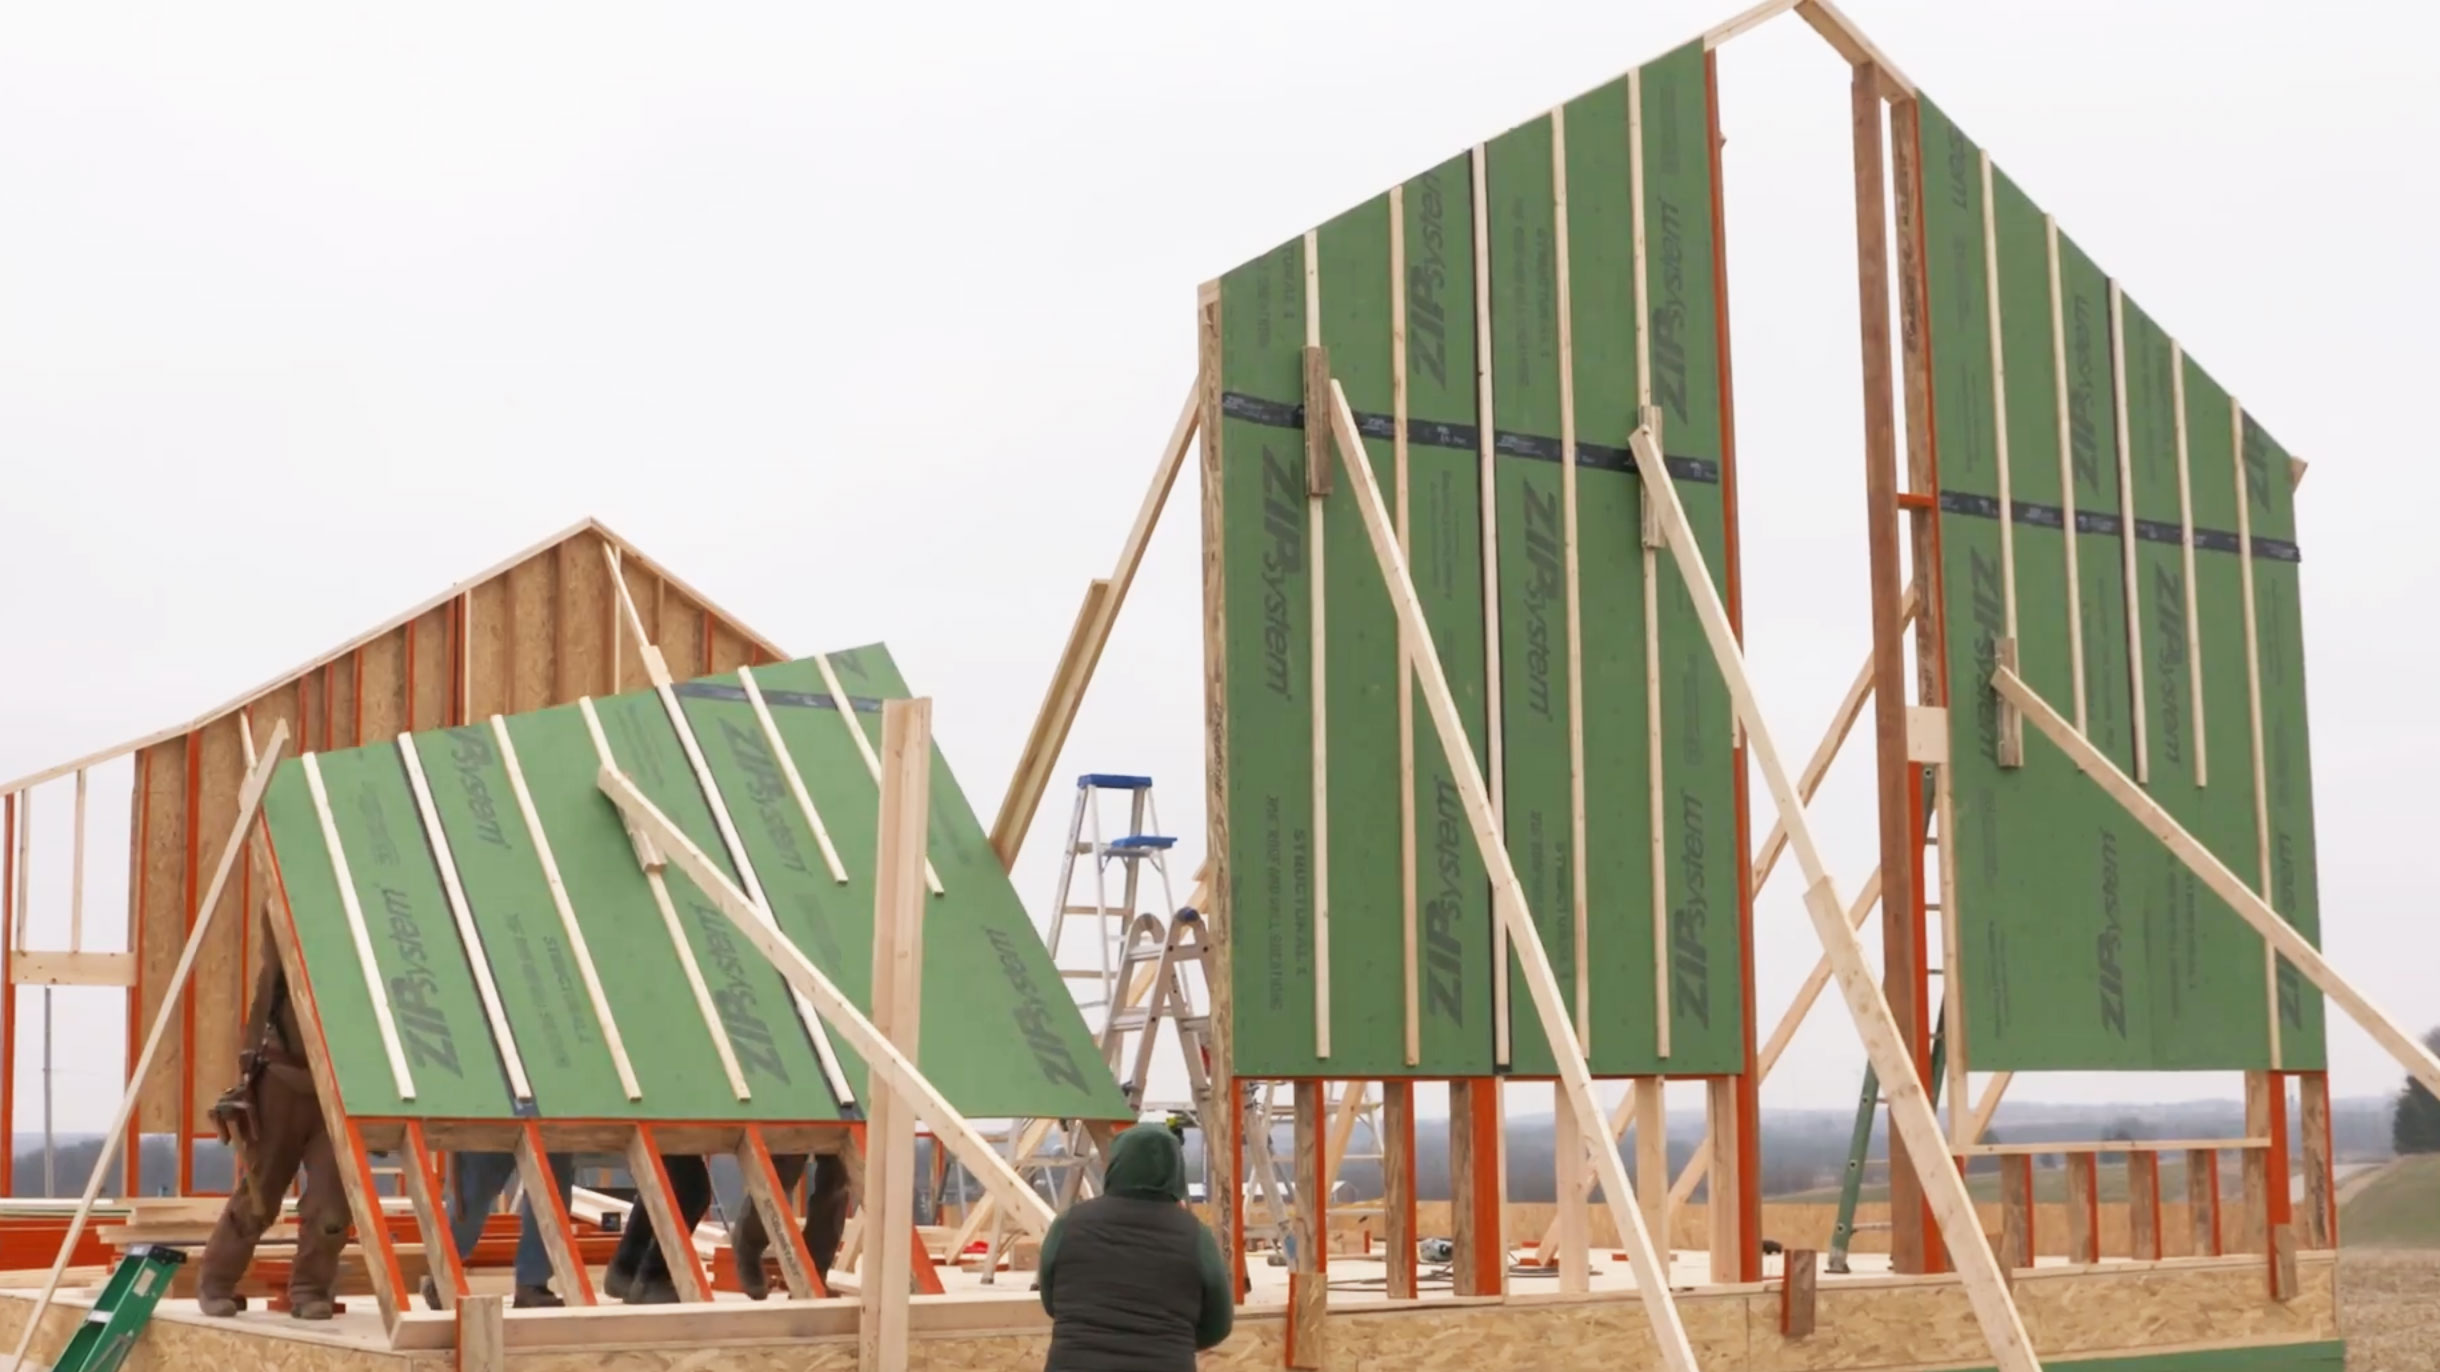 A tip raises a wall covered in green ZIP sheathing